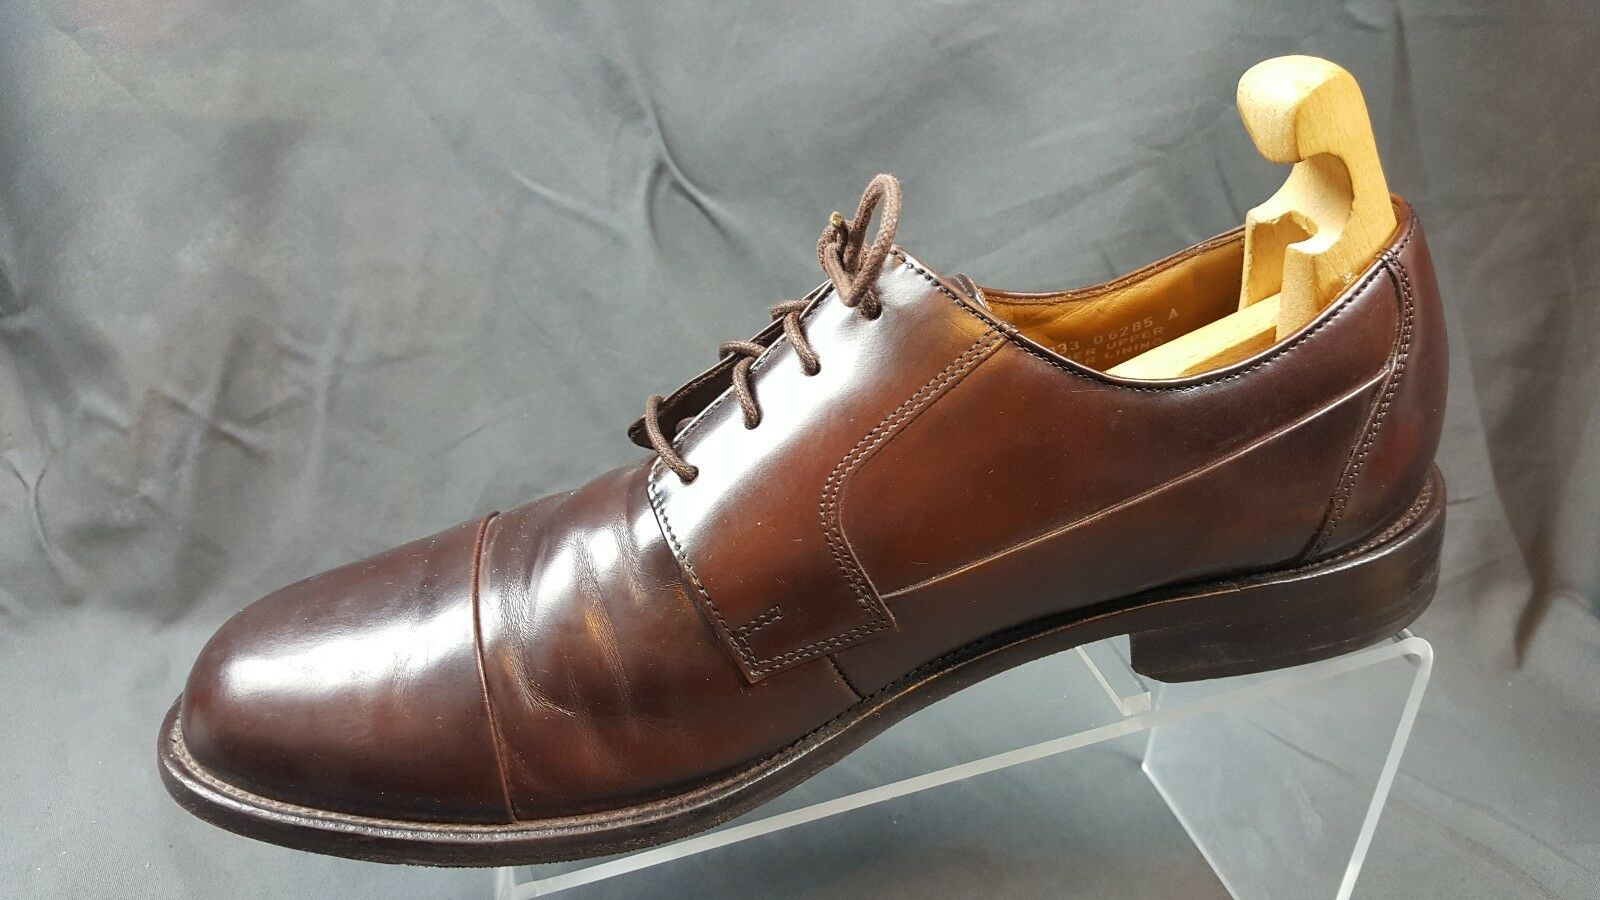 Bostonian 25033 Brown Leather Cap Toe Oxfords Men's US 12M EU 46.5